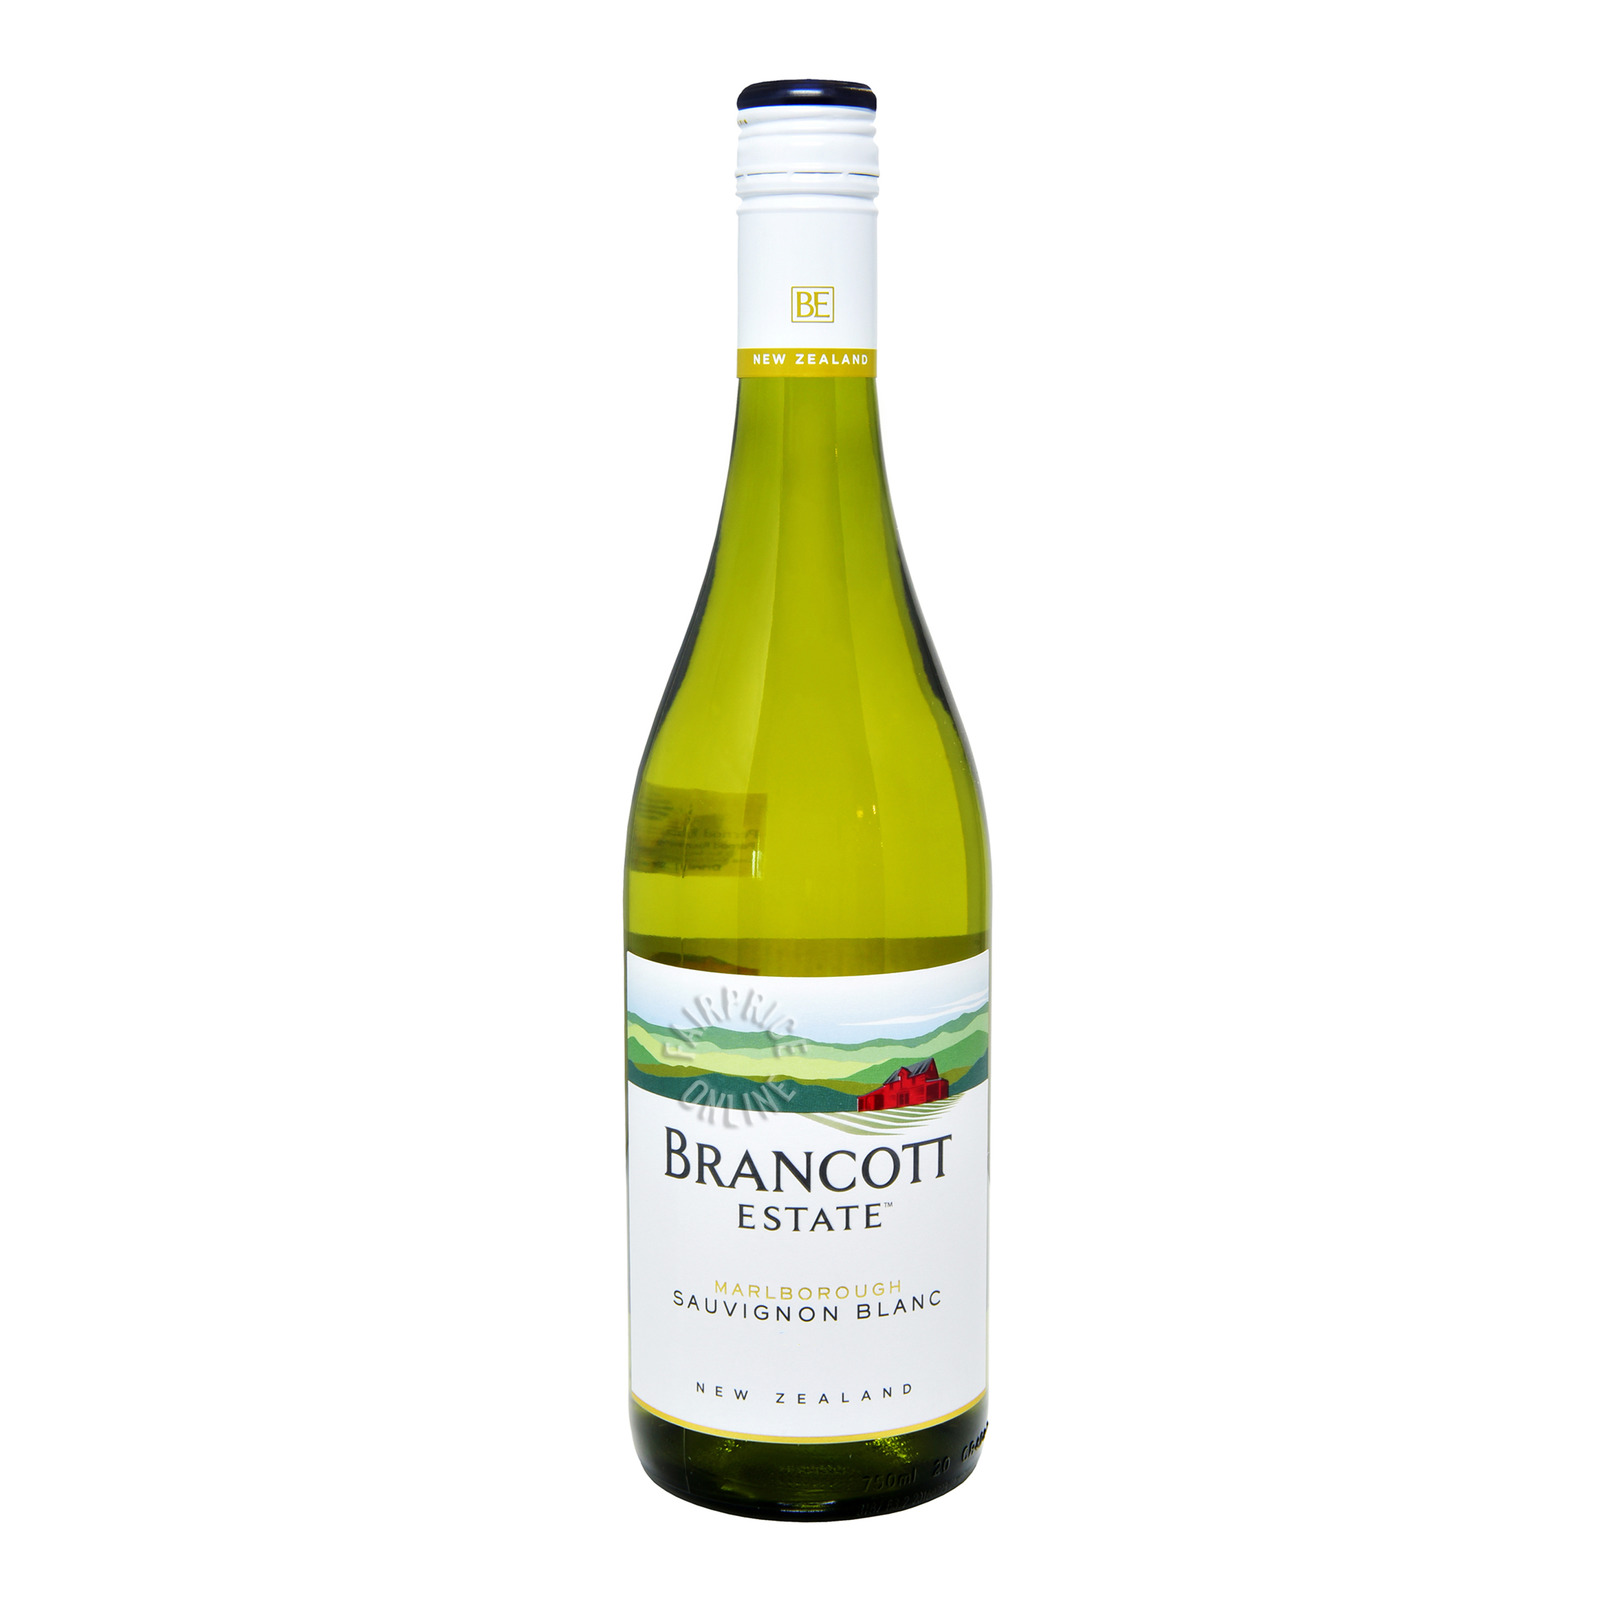 Brancott Estate White Wine - Marlborough Sauvignon Blanc